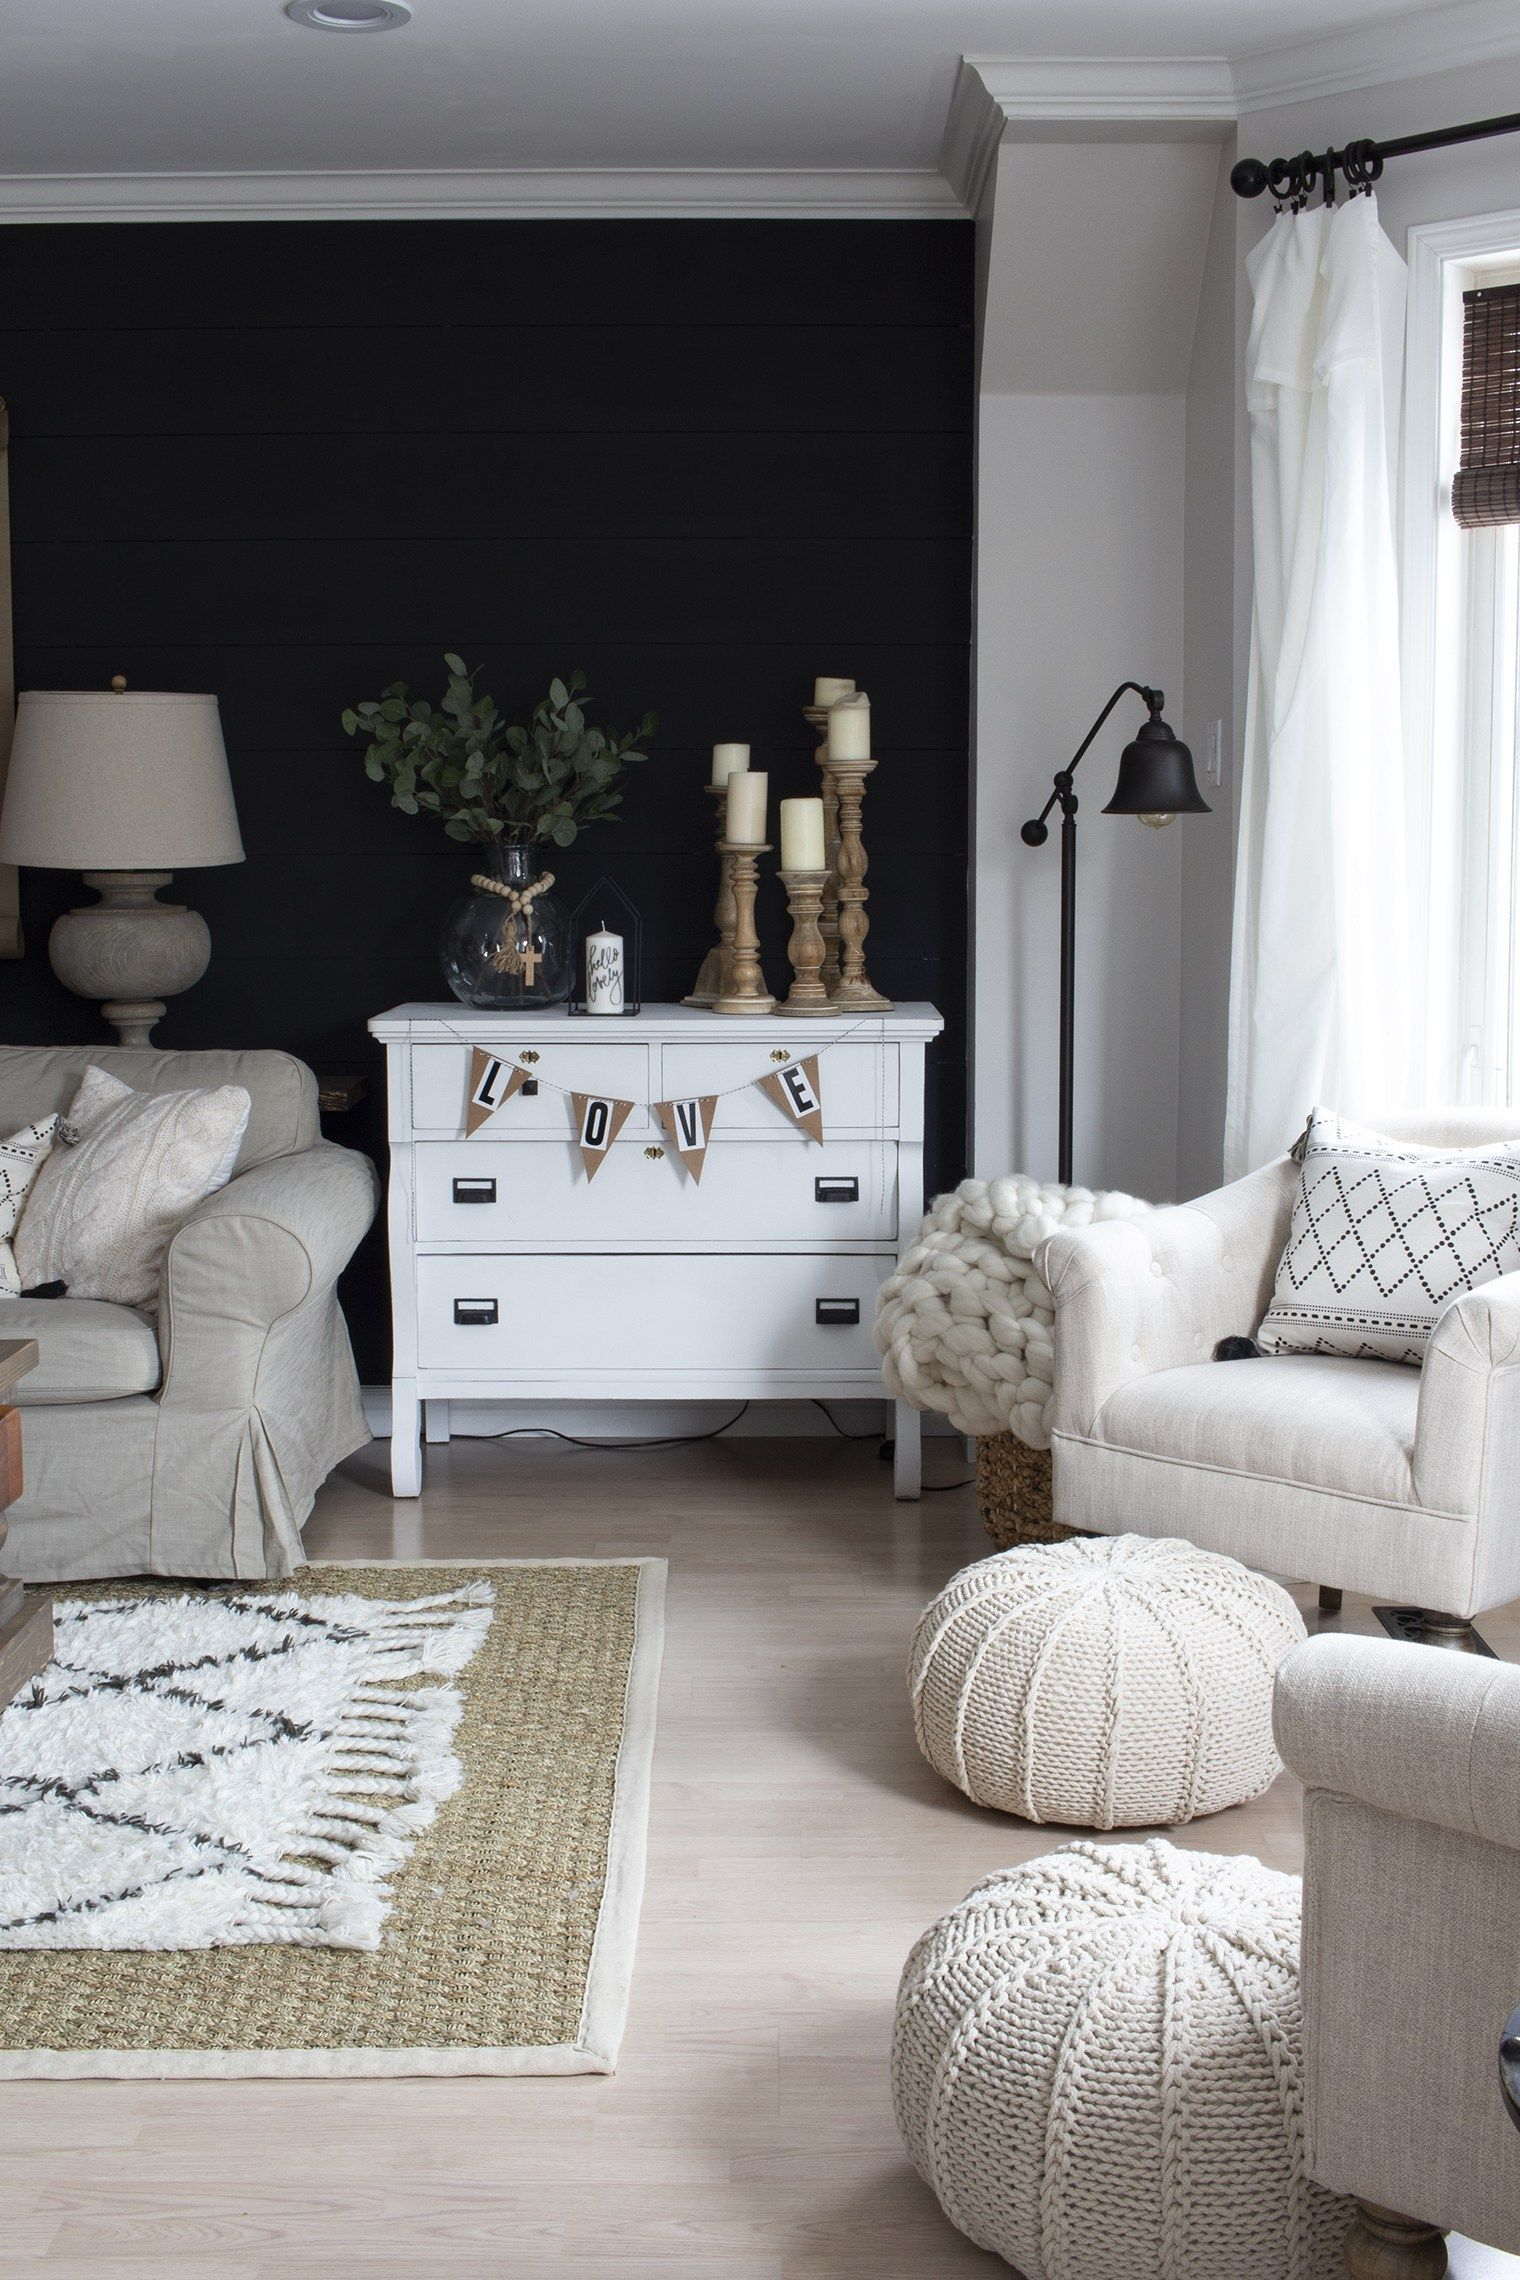 A Very Neutral Spring Farmhouse Living Room Farm House Living Room Black Accent Walls Black Accent Wall Living Room